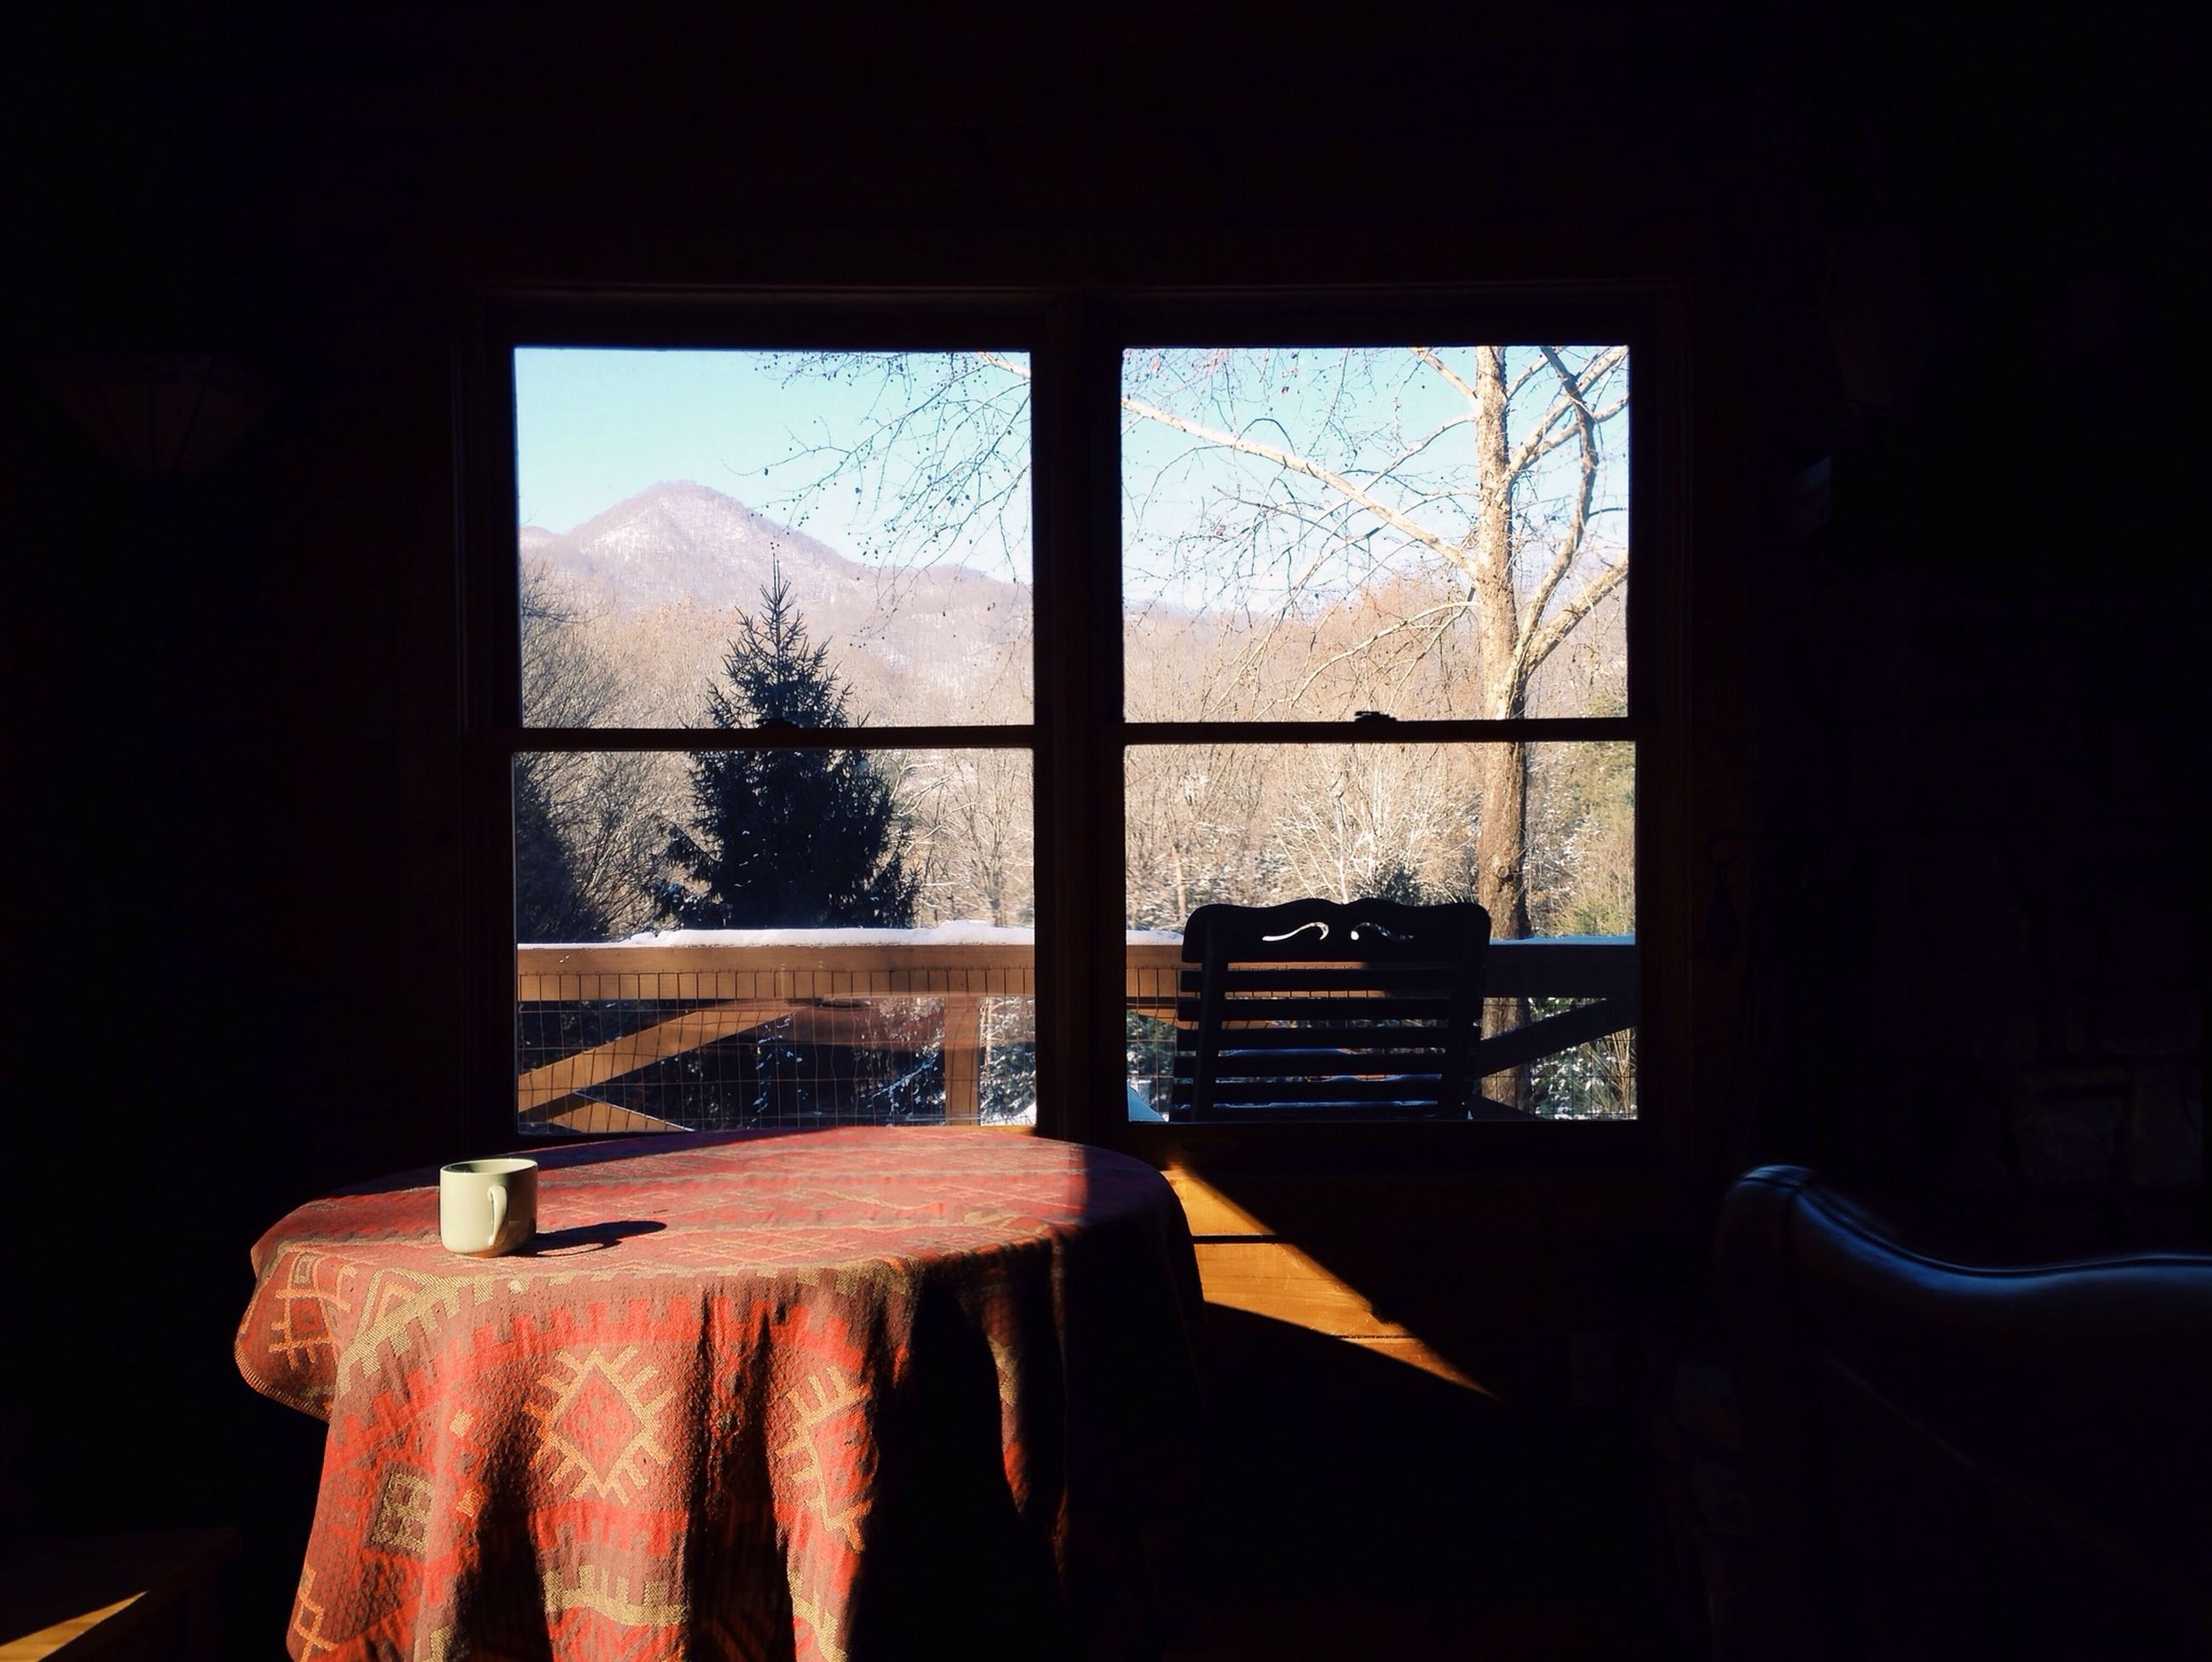 window, indoors, glass - material, transparent, home interior, curtain, house, tree, built structure, architecture, window sill, looking through window, day, table, cold temperature, sunlight, glass, absence, open, no people